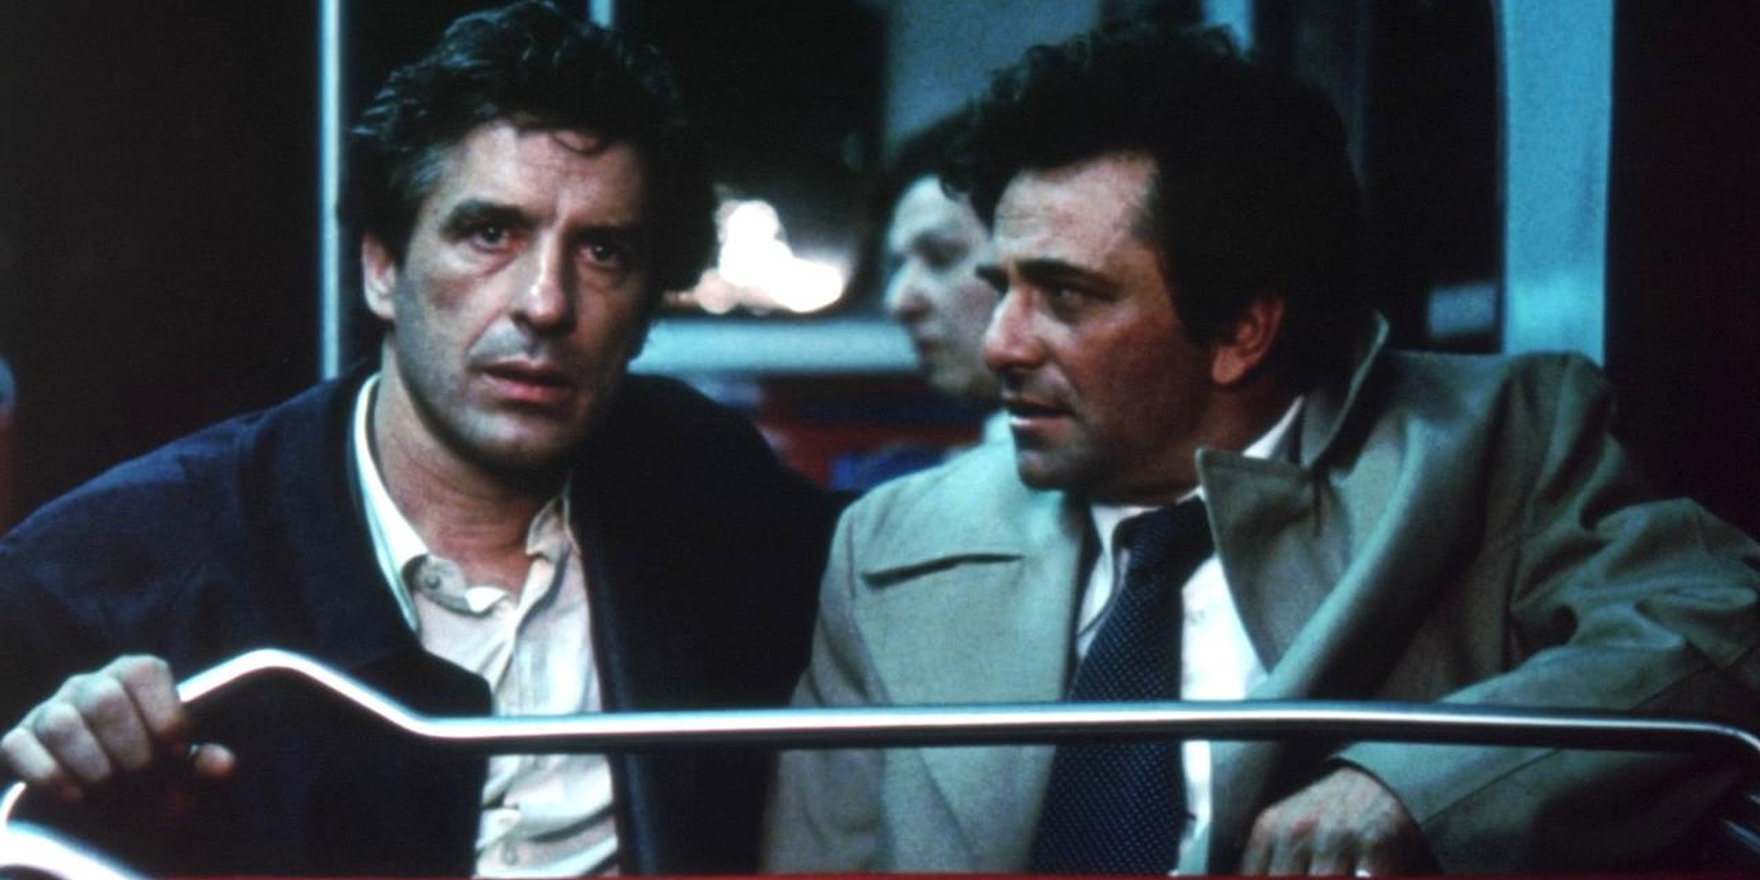 Why I Keep Returning to Mikey and Nicky